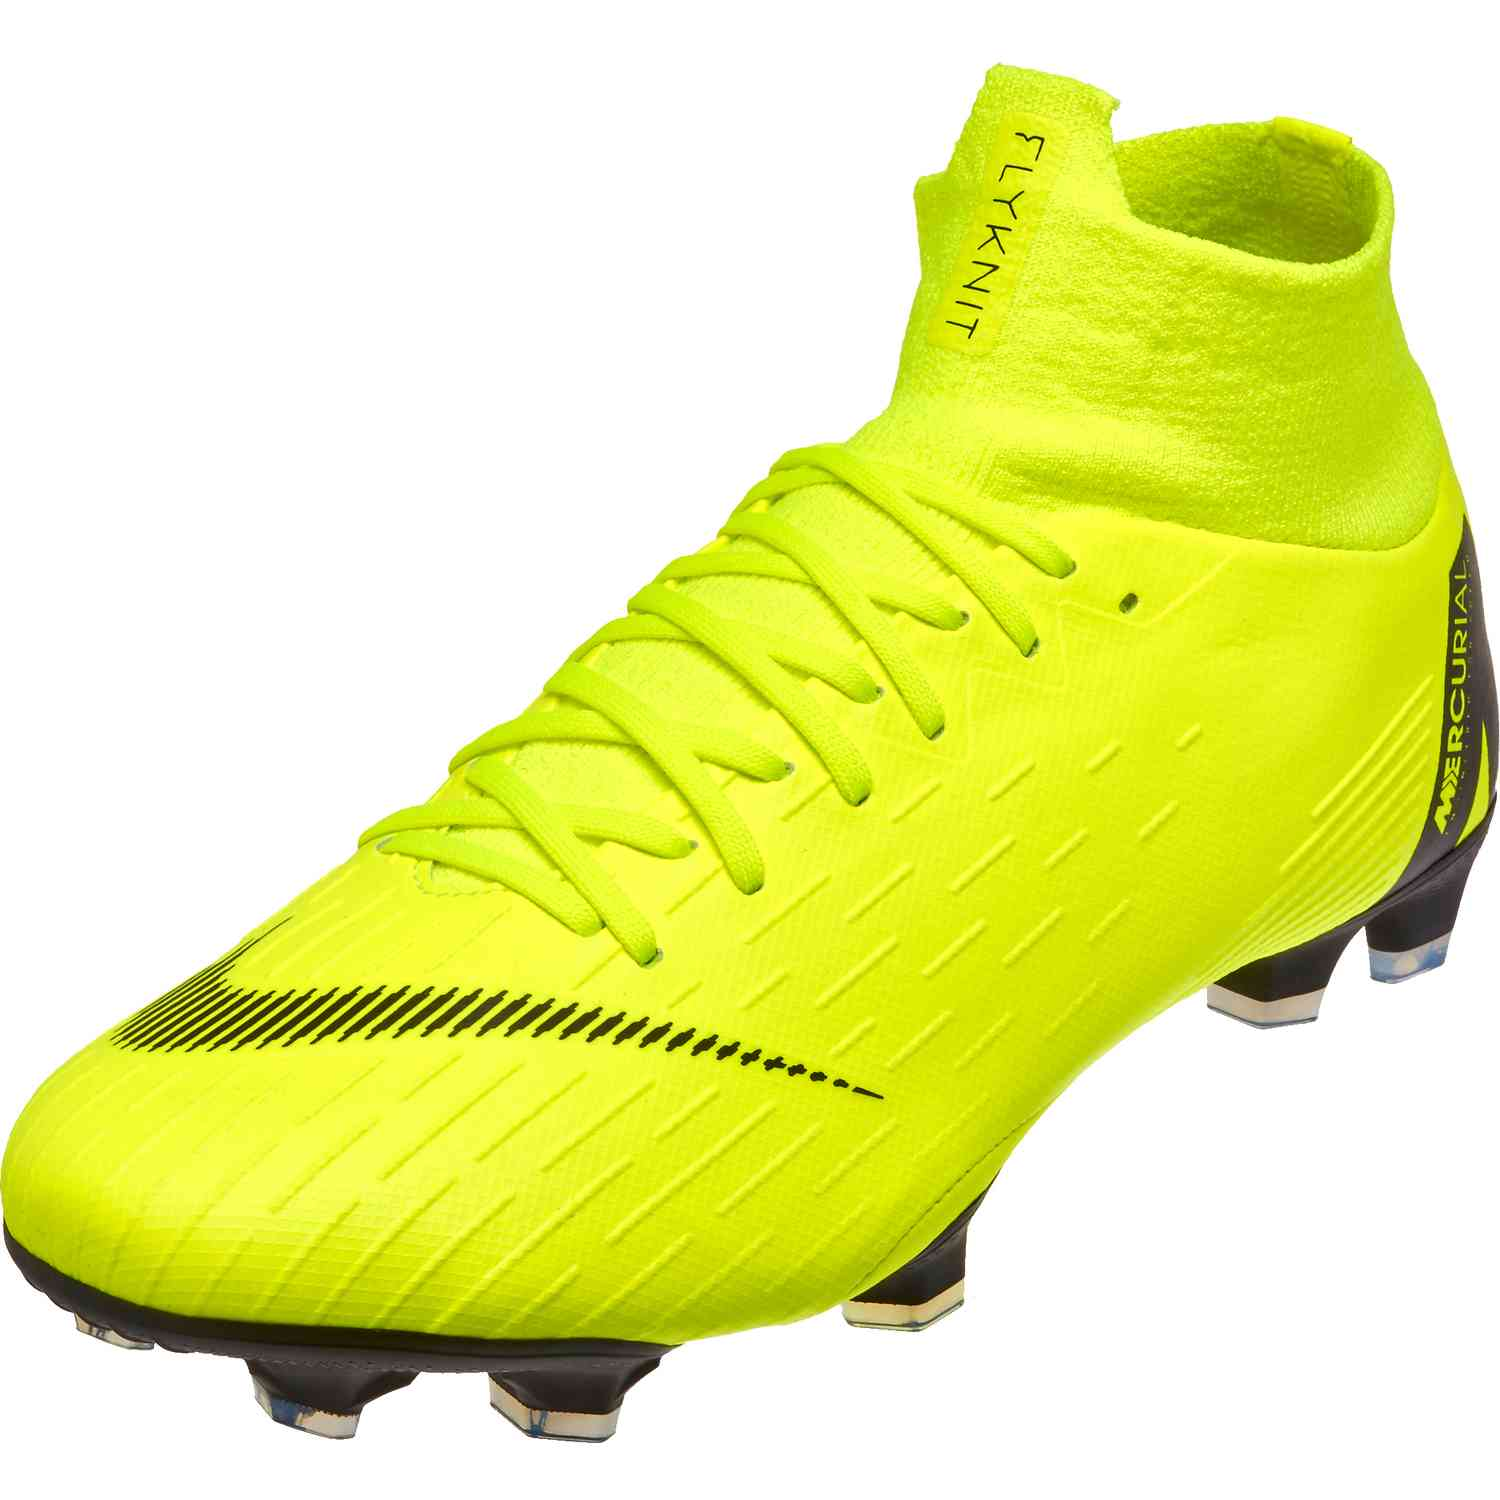 new york ed8ba c8b0a Nike Mercurial Superfly 6 Pro FG - Volt/Black - SoccerPro